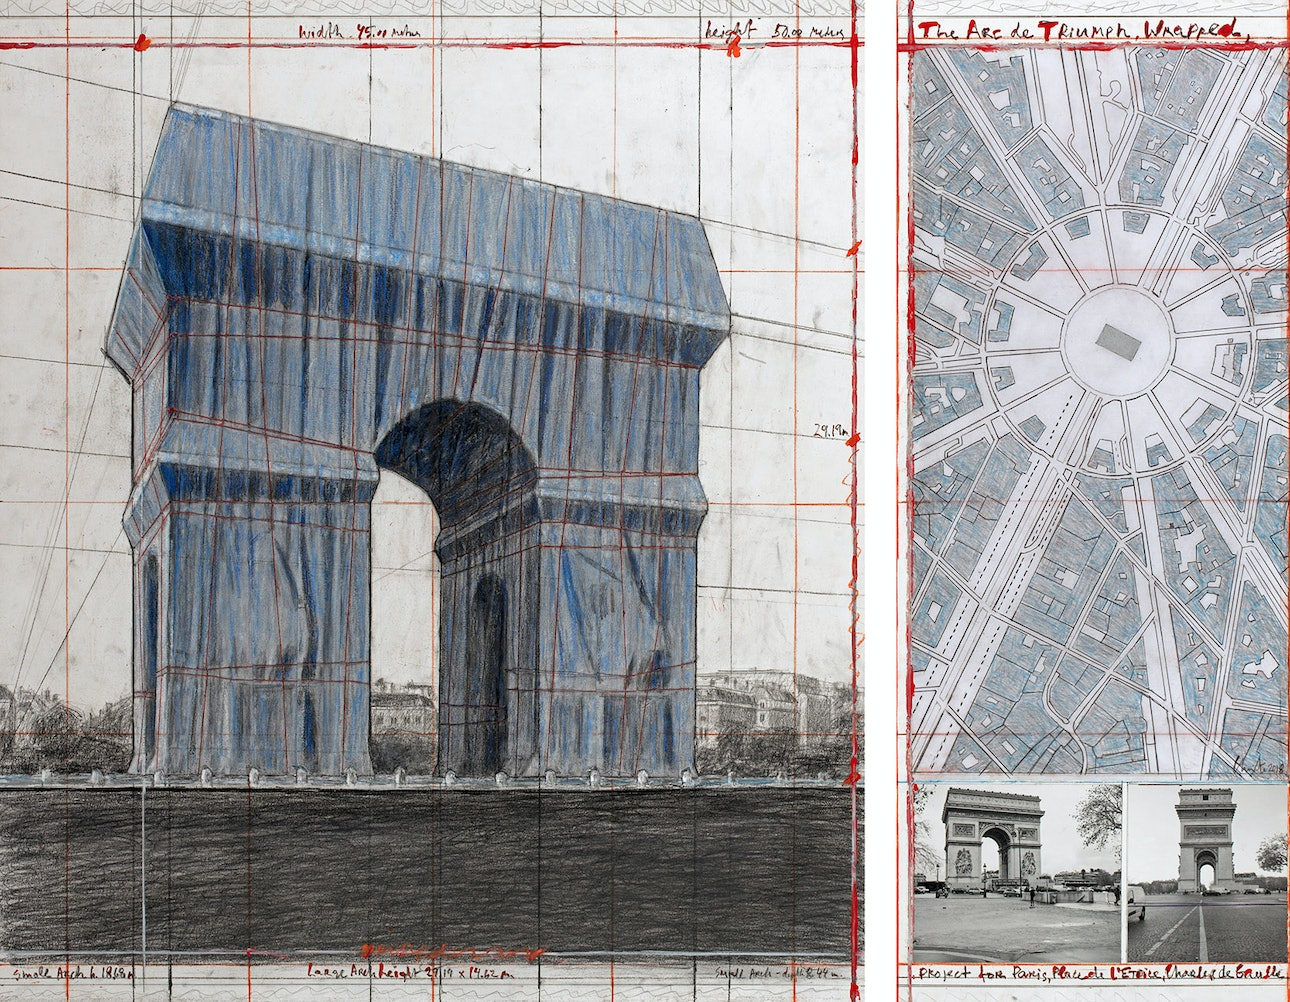 L'Arc de Triomphe, Wrapped - The Arc de Triumph, Wrapped, Project for Paris, Place de l'Etoile, Charles de Gaulle